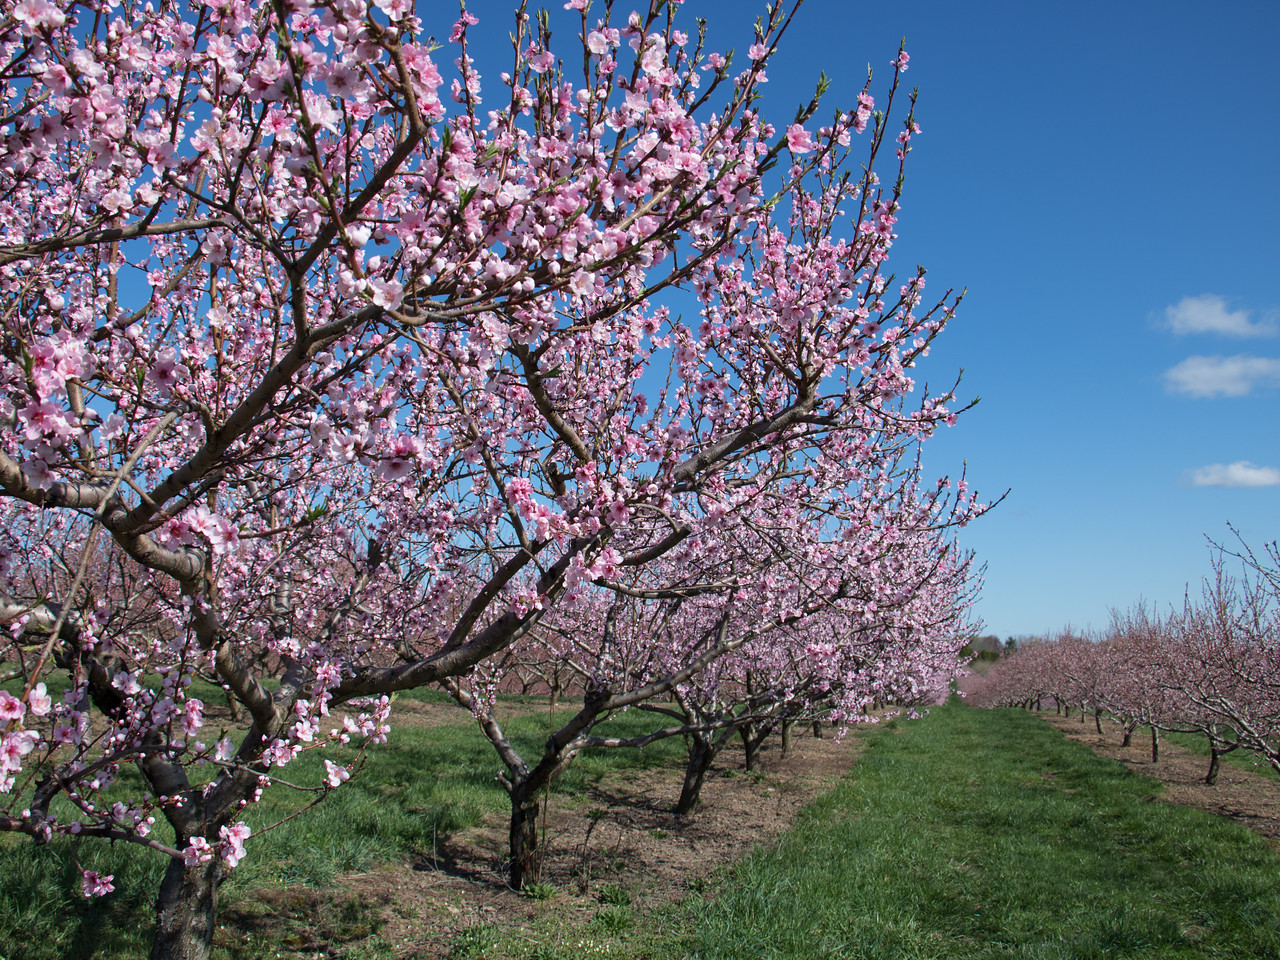 Lyman Orchards Spring 2017 Bloom